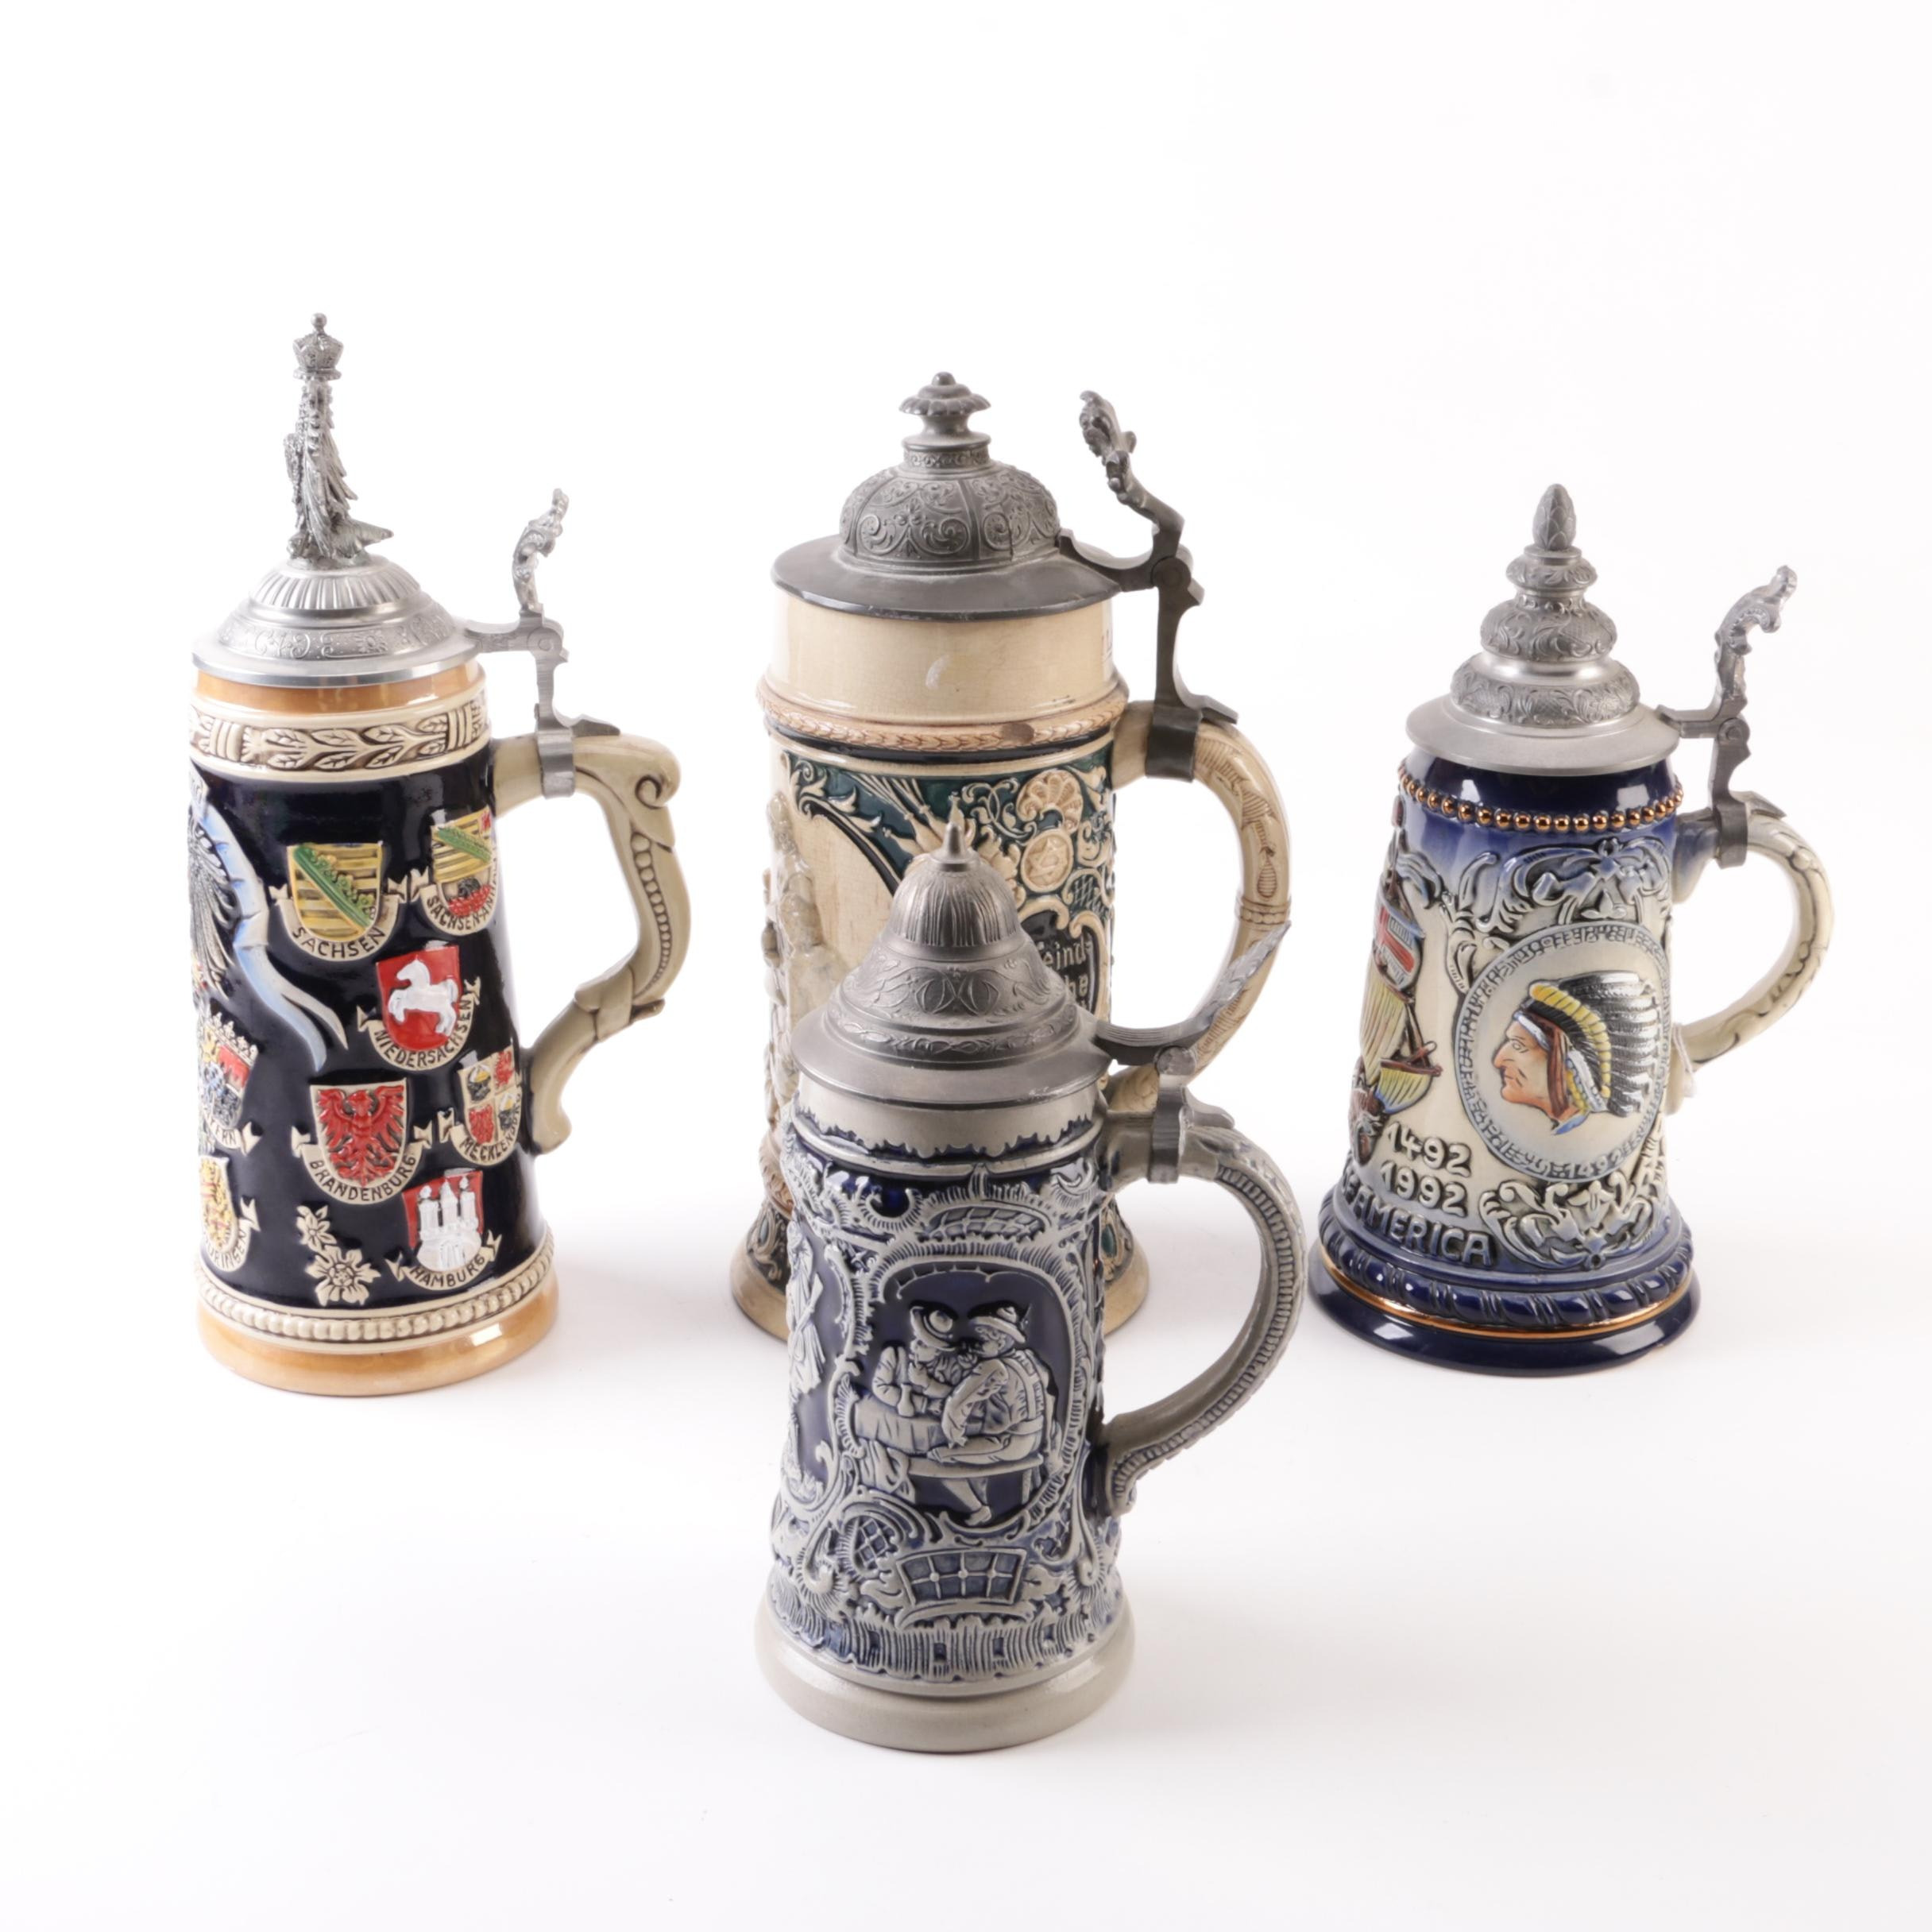 Zöller & Born and King Beer Steins and Others